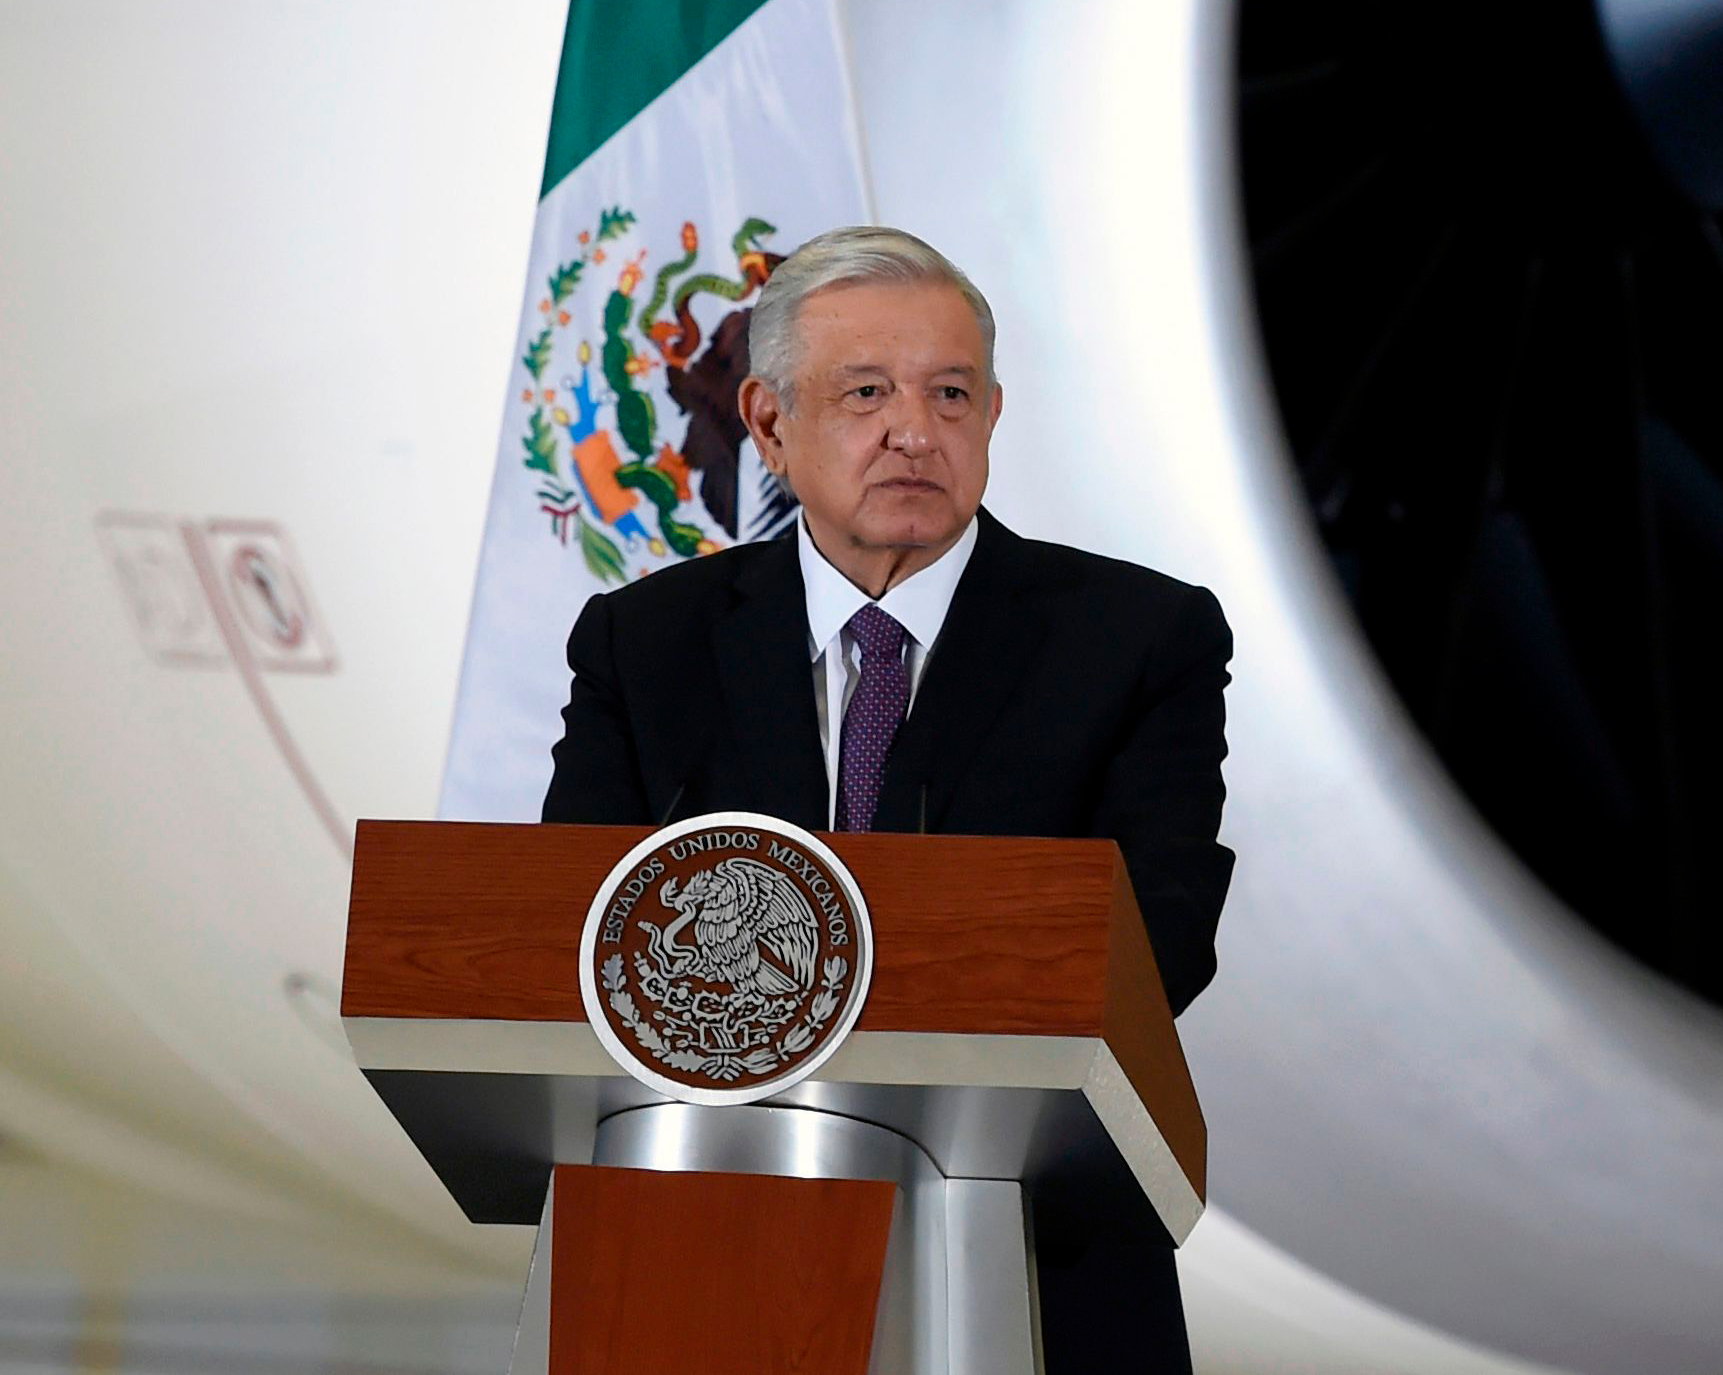 Mexican President Andres Manuel Lopez Obrador speaks during a press conference at the presidential hangar of the Benito Juarez International Airport in Mexico City on July 27.